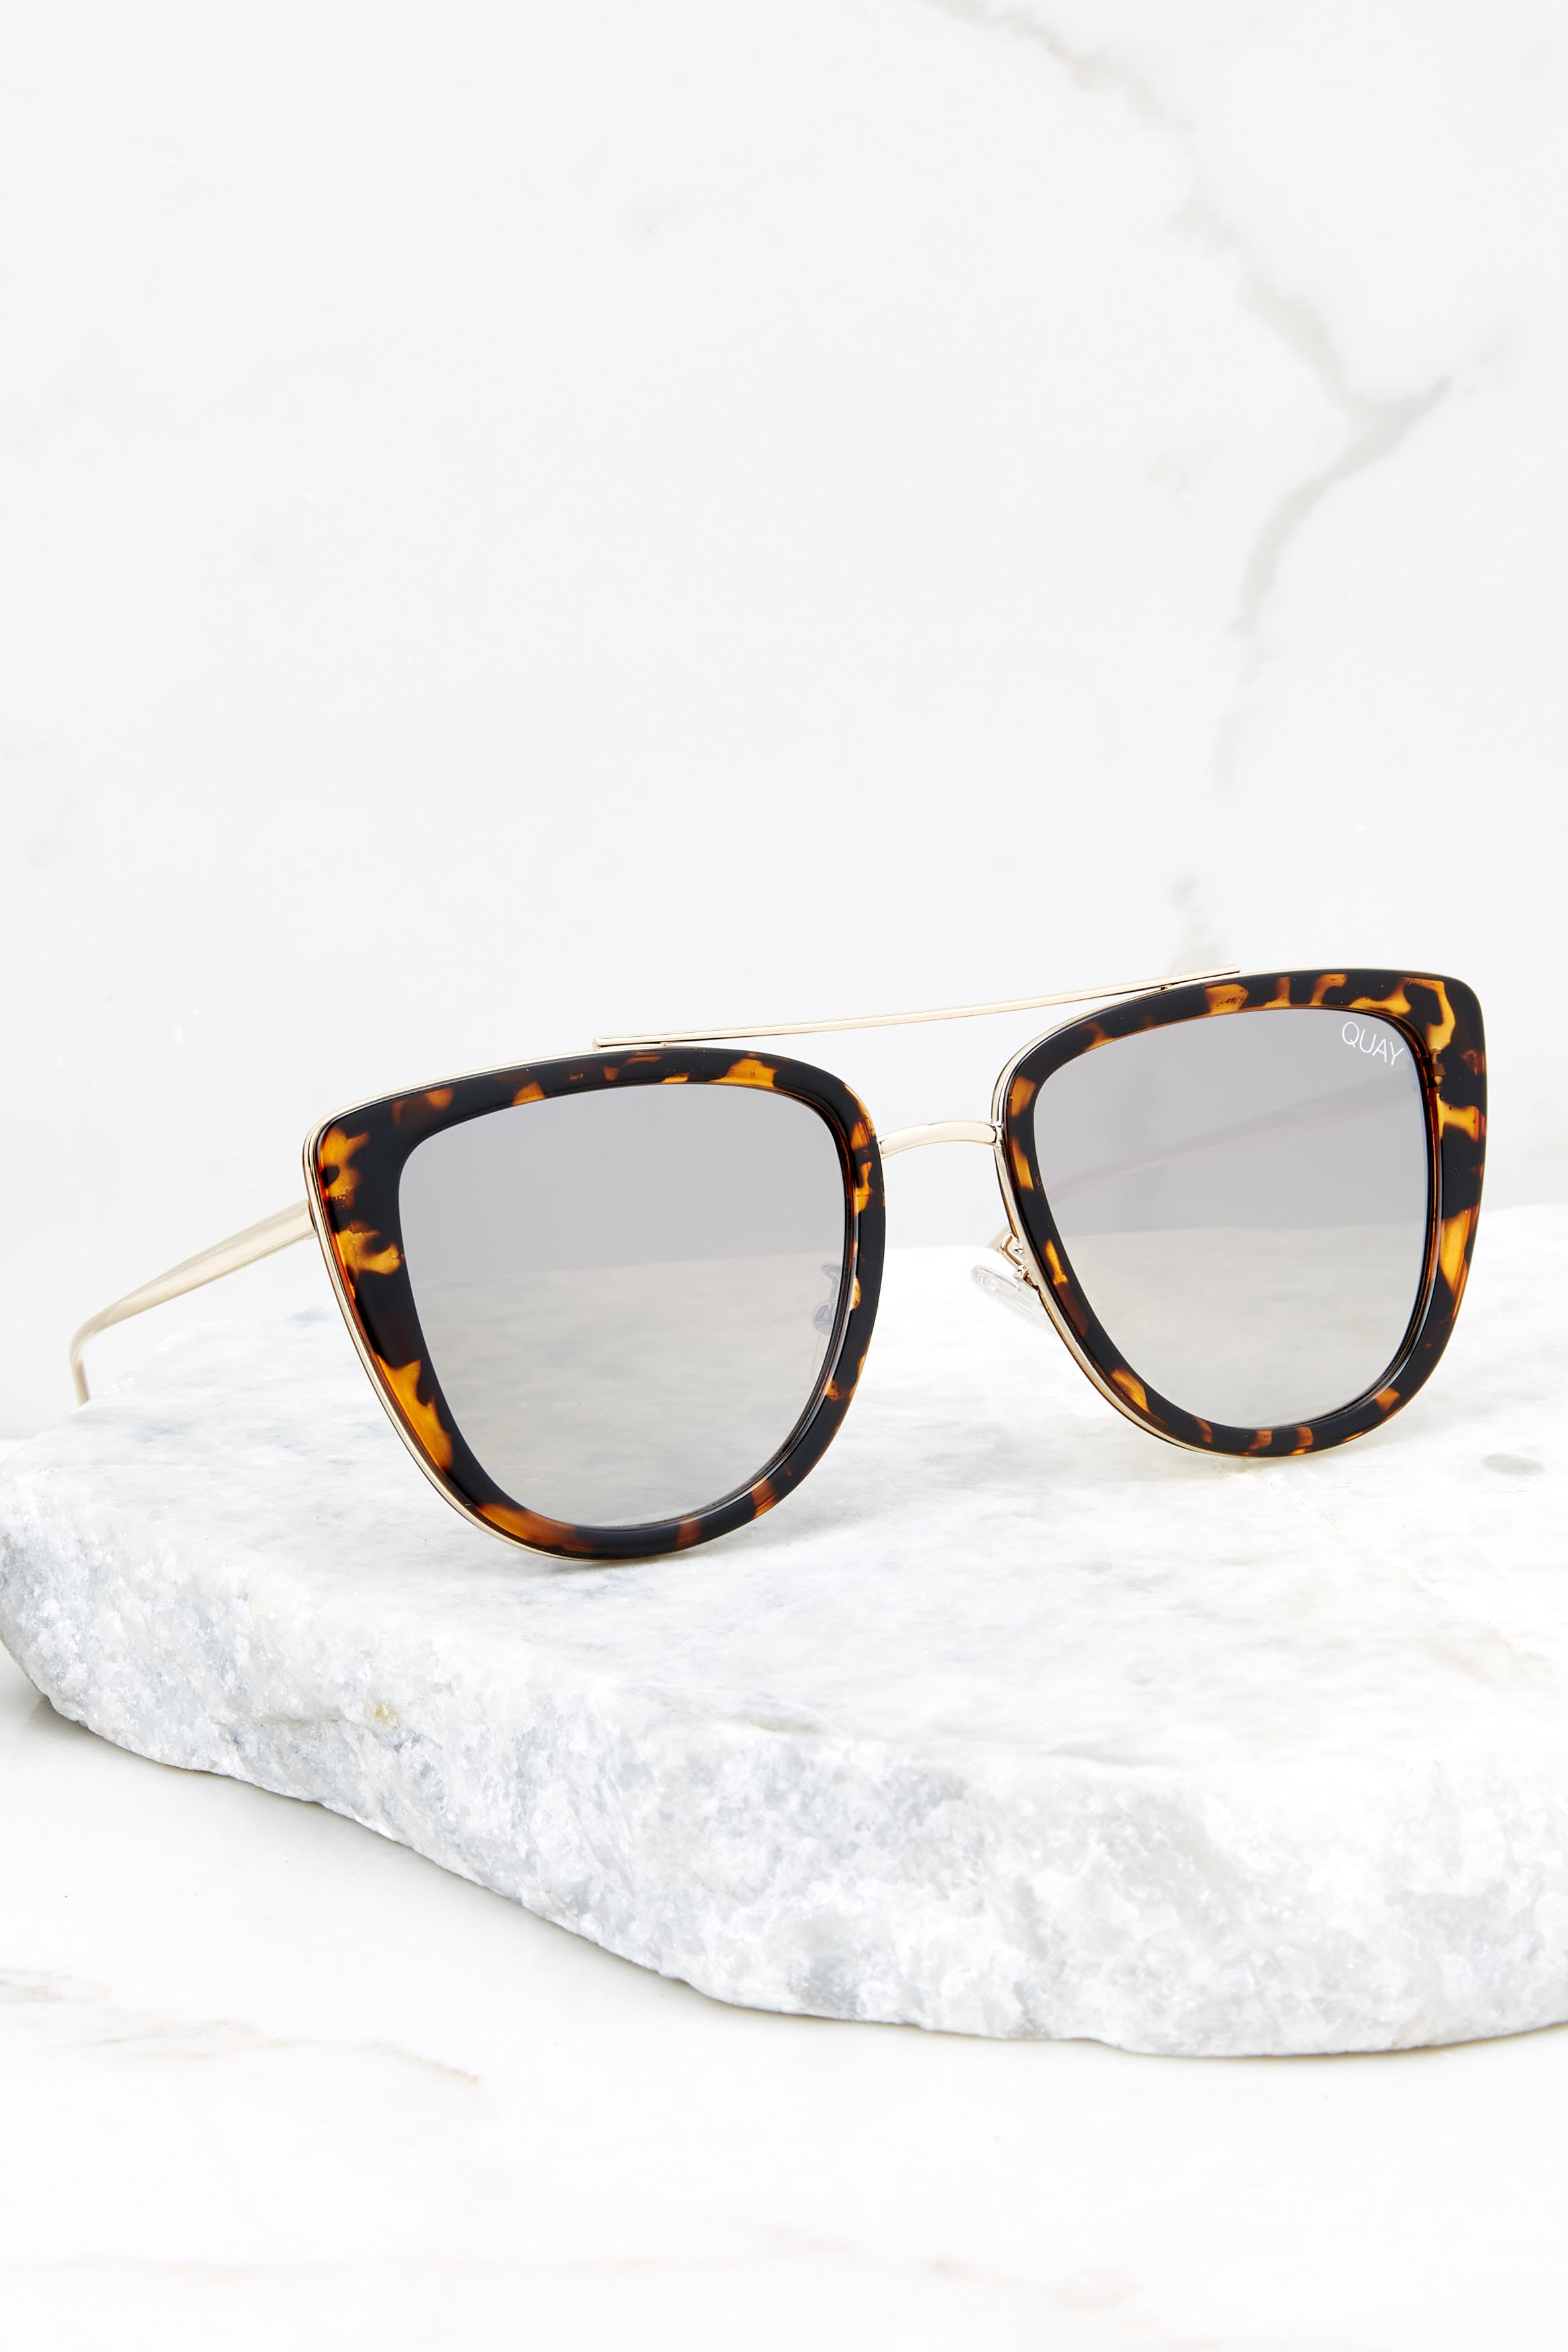 2 French Kiss Tortoise Gold Mirror Sunglasses at reddress.com